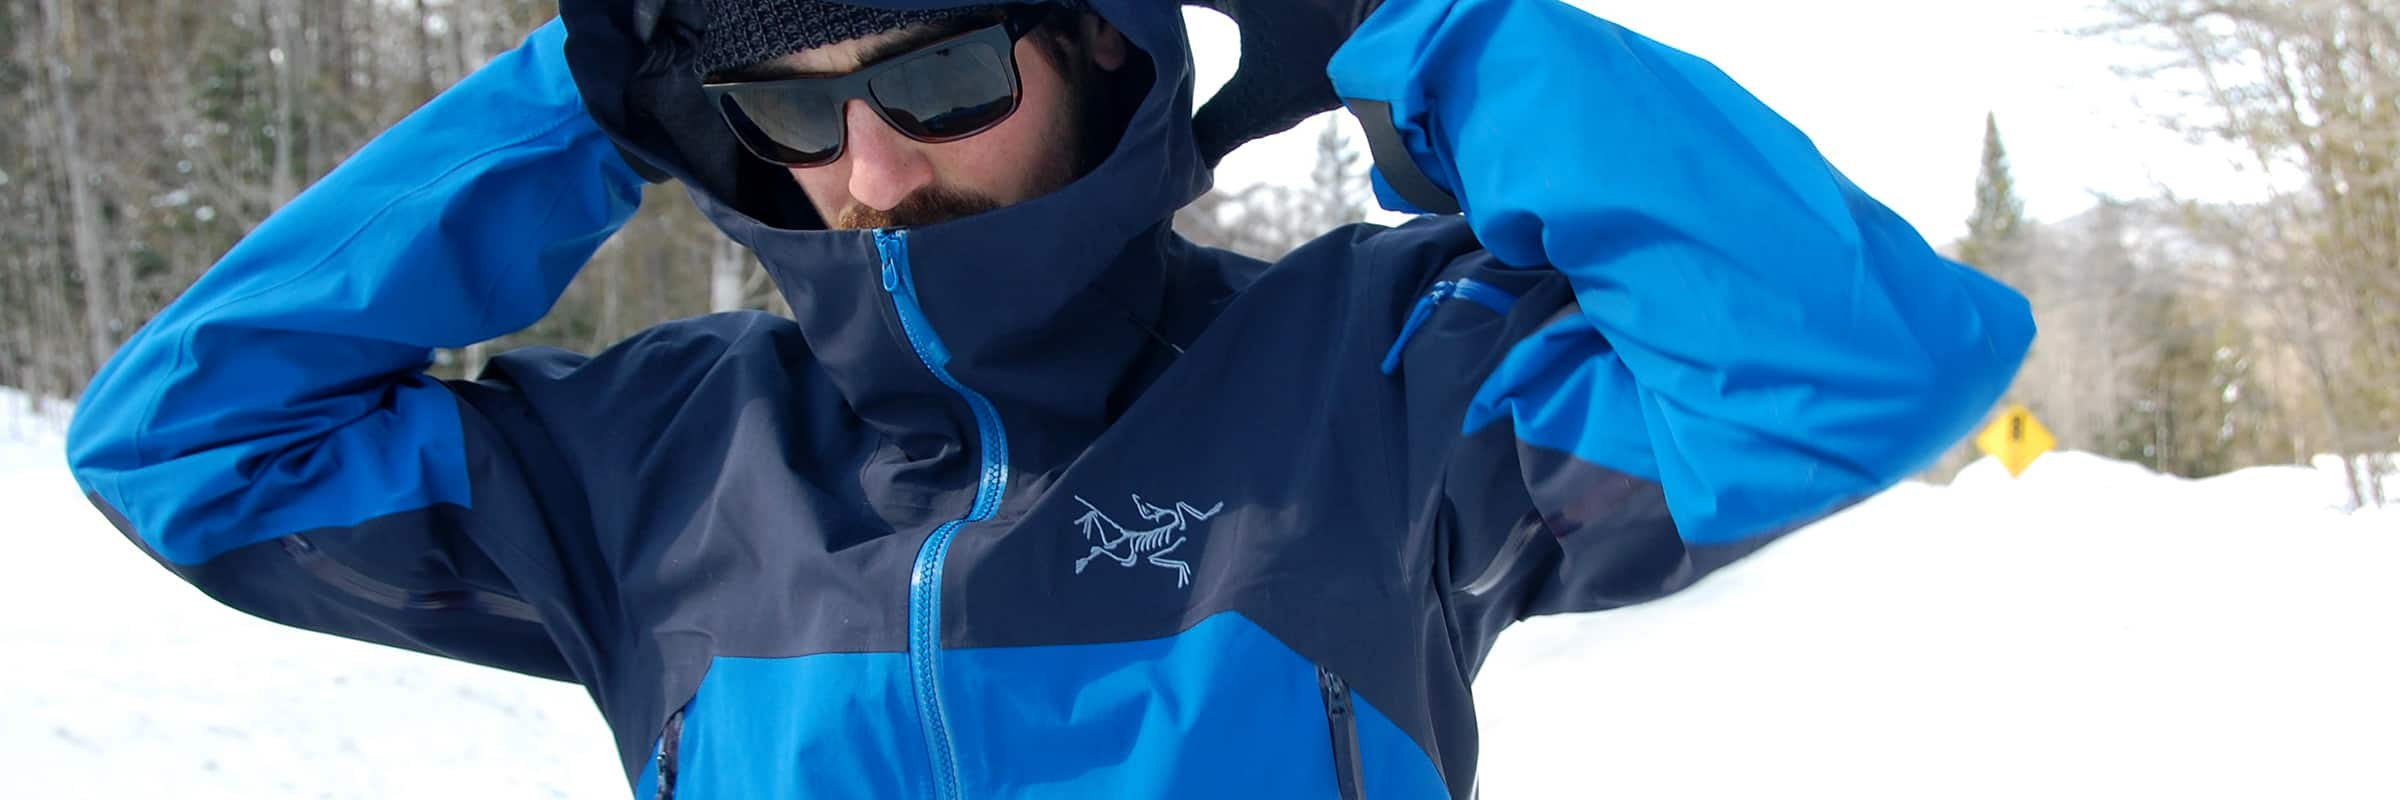 Arc'teryx, Ski & Snowboard. Arc'teryx Men's Rush Jacket Reviewed